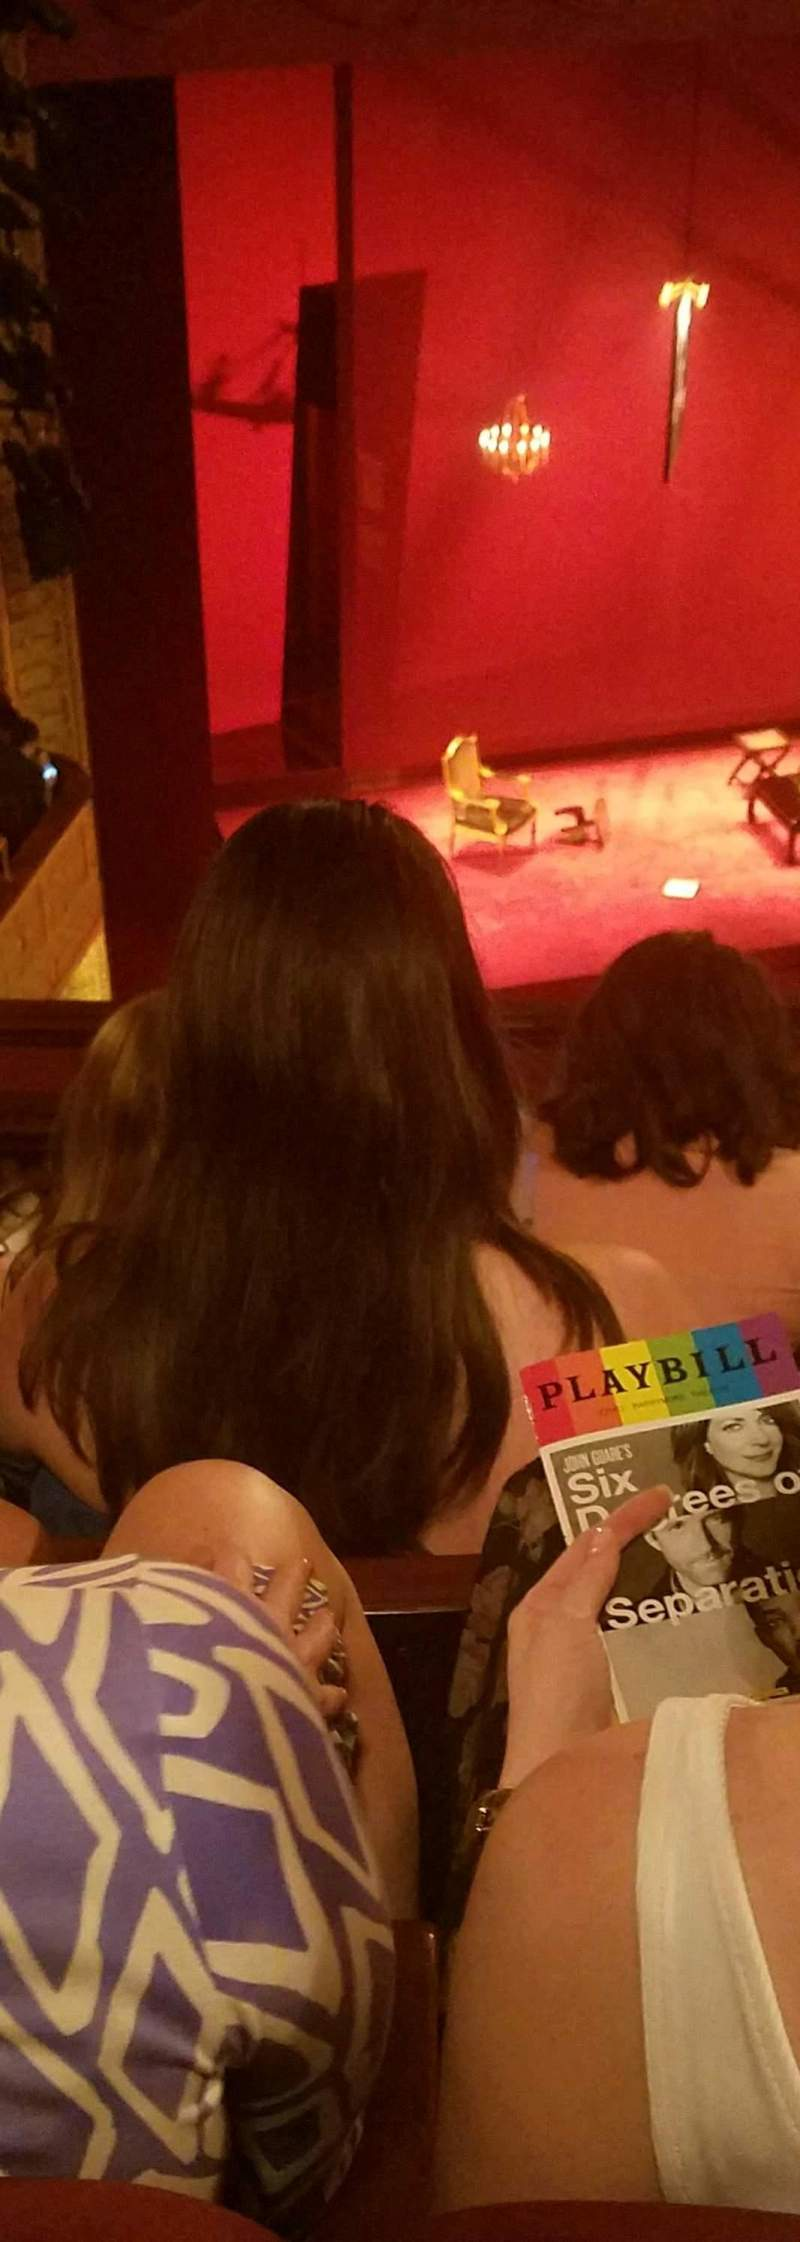 Seating view for Ethel Barrymore Theatre Section Rear Mezzanine L Row E Seat 15